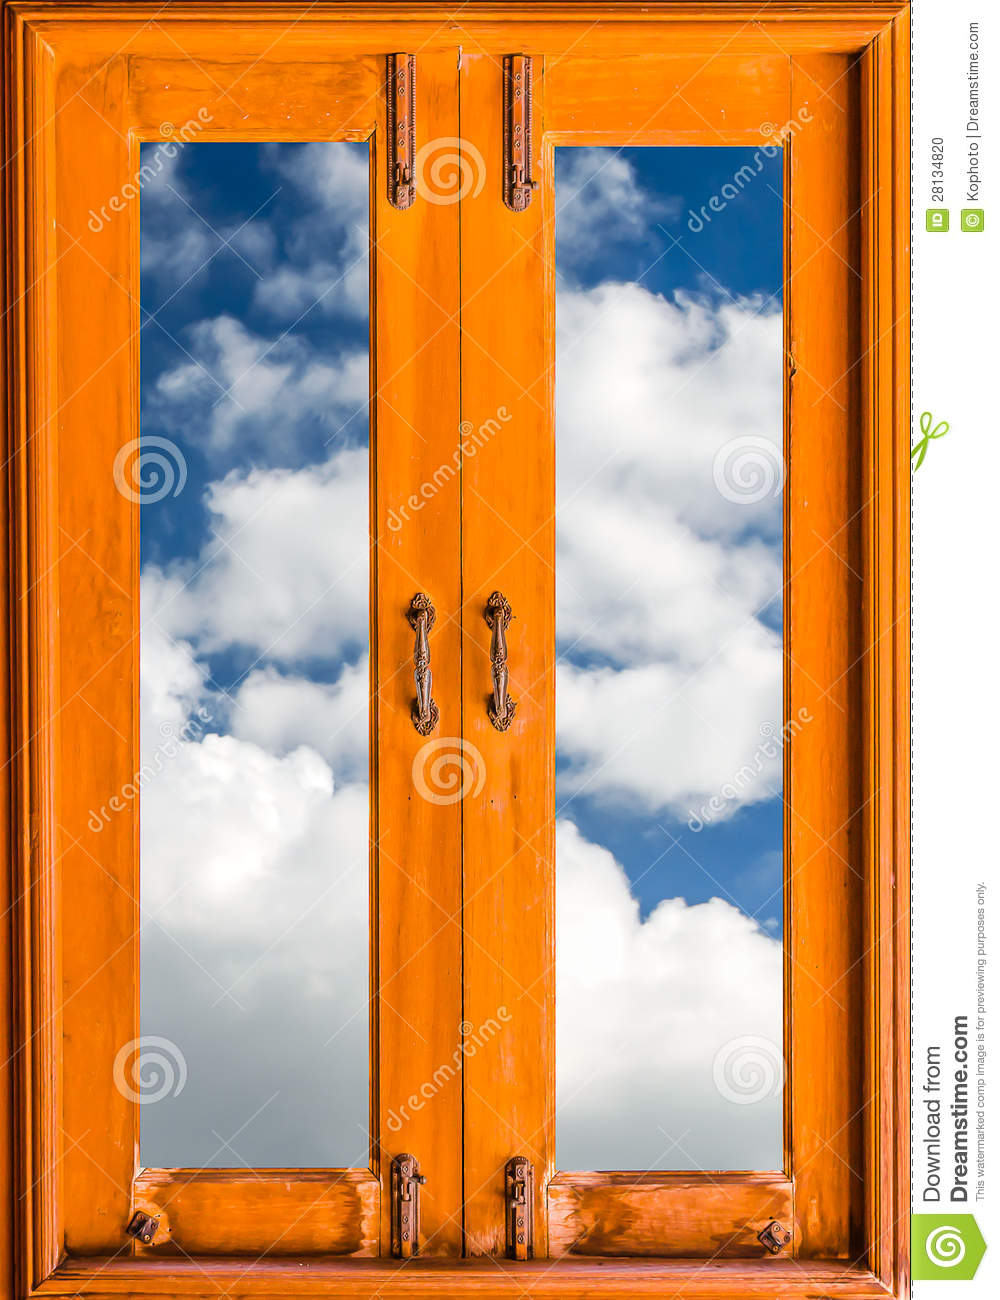 Old closed wood glass window frame with clouds